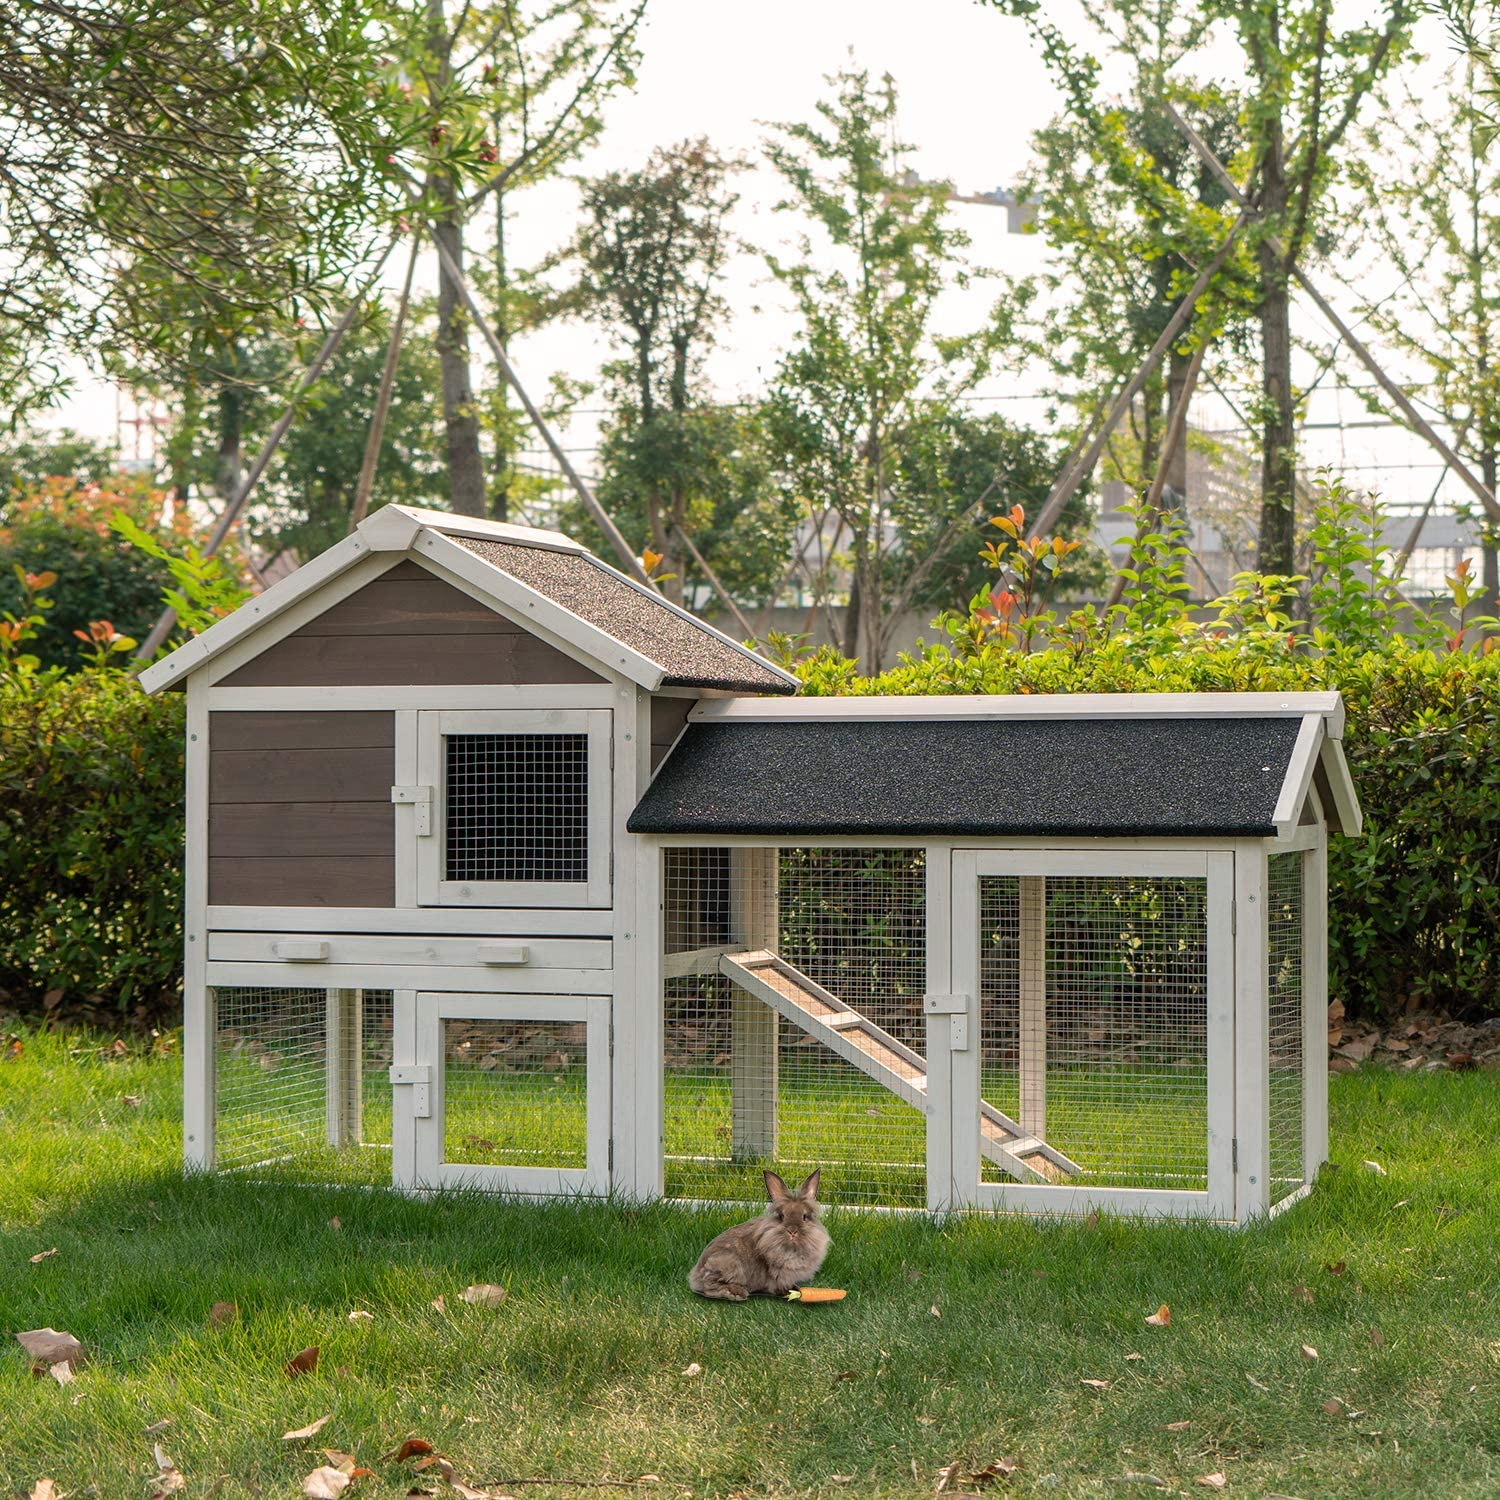 Amazon.com : Kinsuite Rabbit Hutch Outdoor Bunny Cage with ... on stone face house designs, house house designs, turkey house designs, duck house designs, hawk house designs, bird house designs, cat house designs, rabbit blueprints, small hog house designs, birdhouse house designs, rabbit engineering, flower house designs, wolf house designs, rabbit houses outdoor, crab house designs, faerie house designs, rottweiler dog house designs, ariel house designs, rabbit farming for profit, playing card house designs,